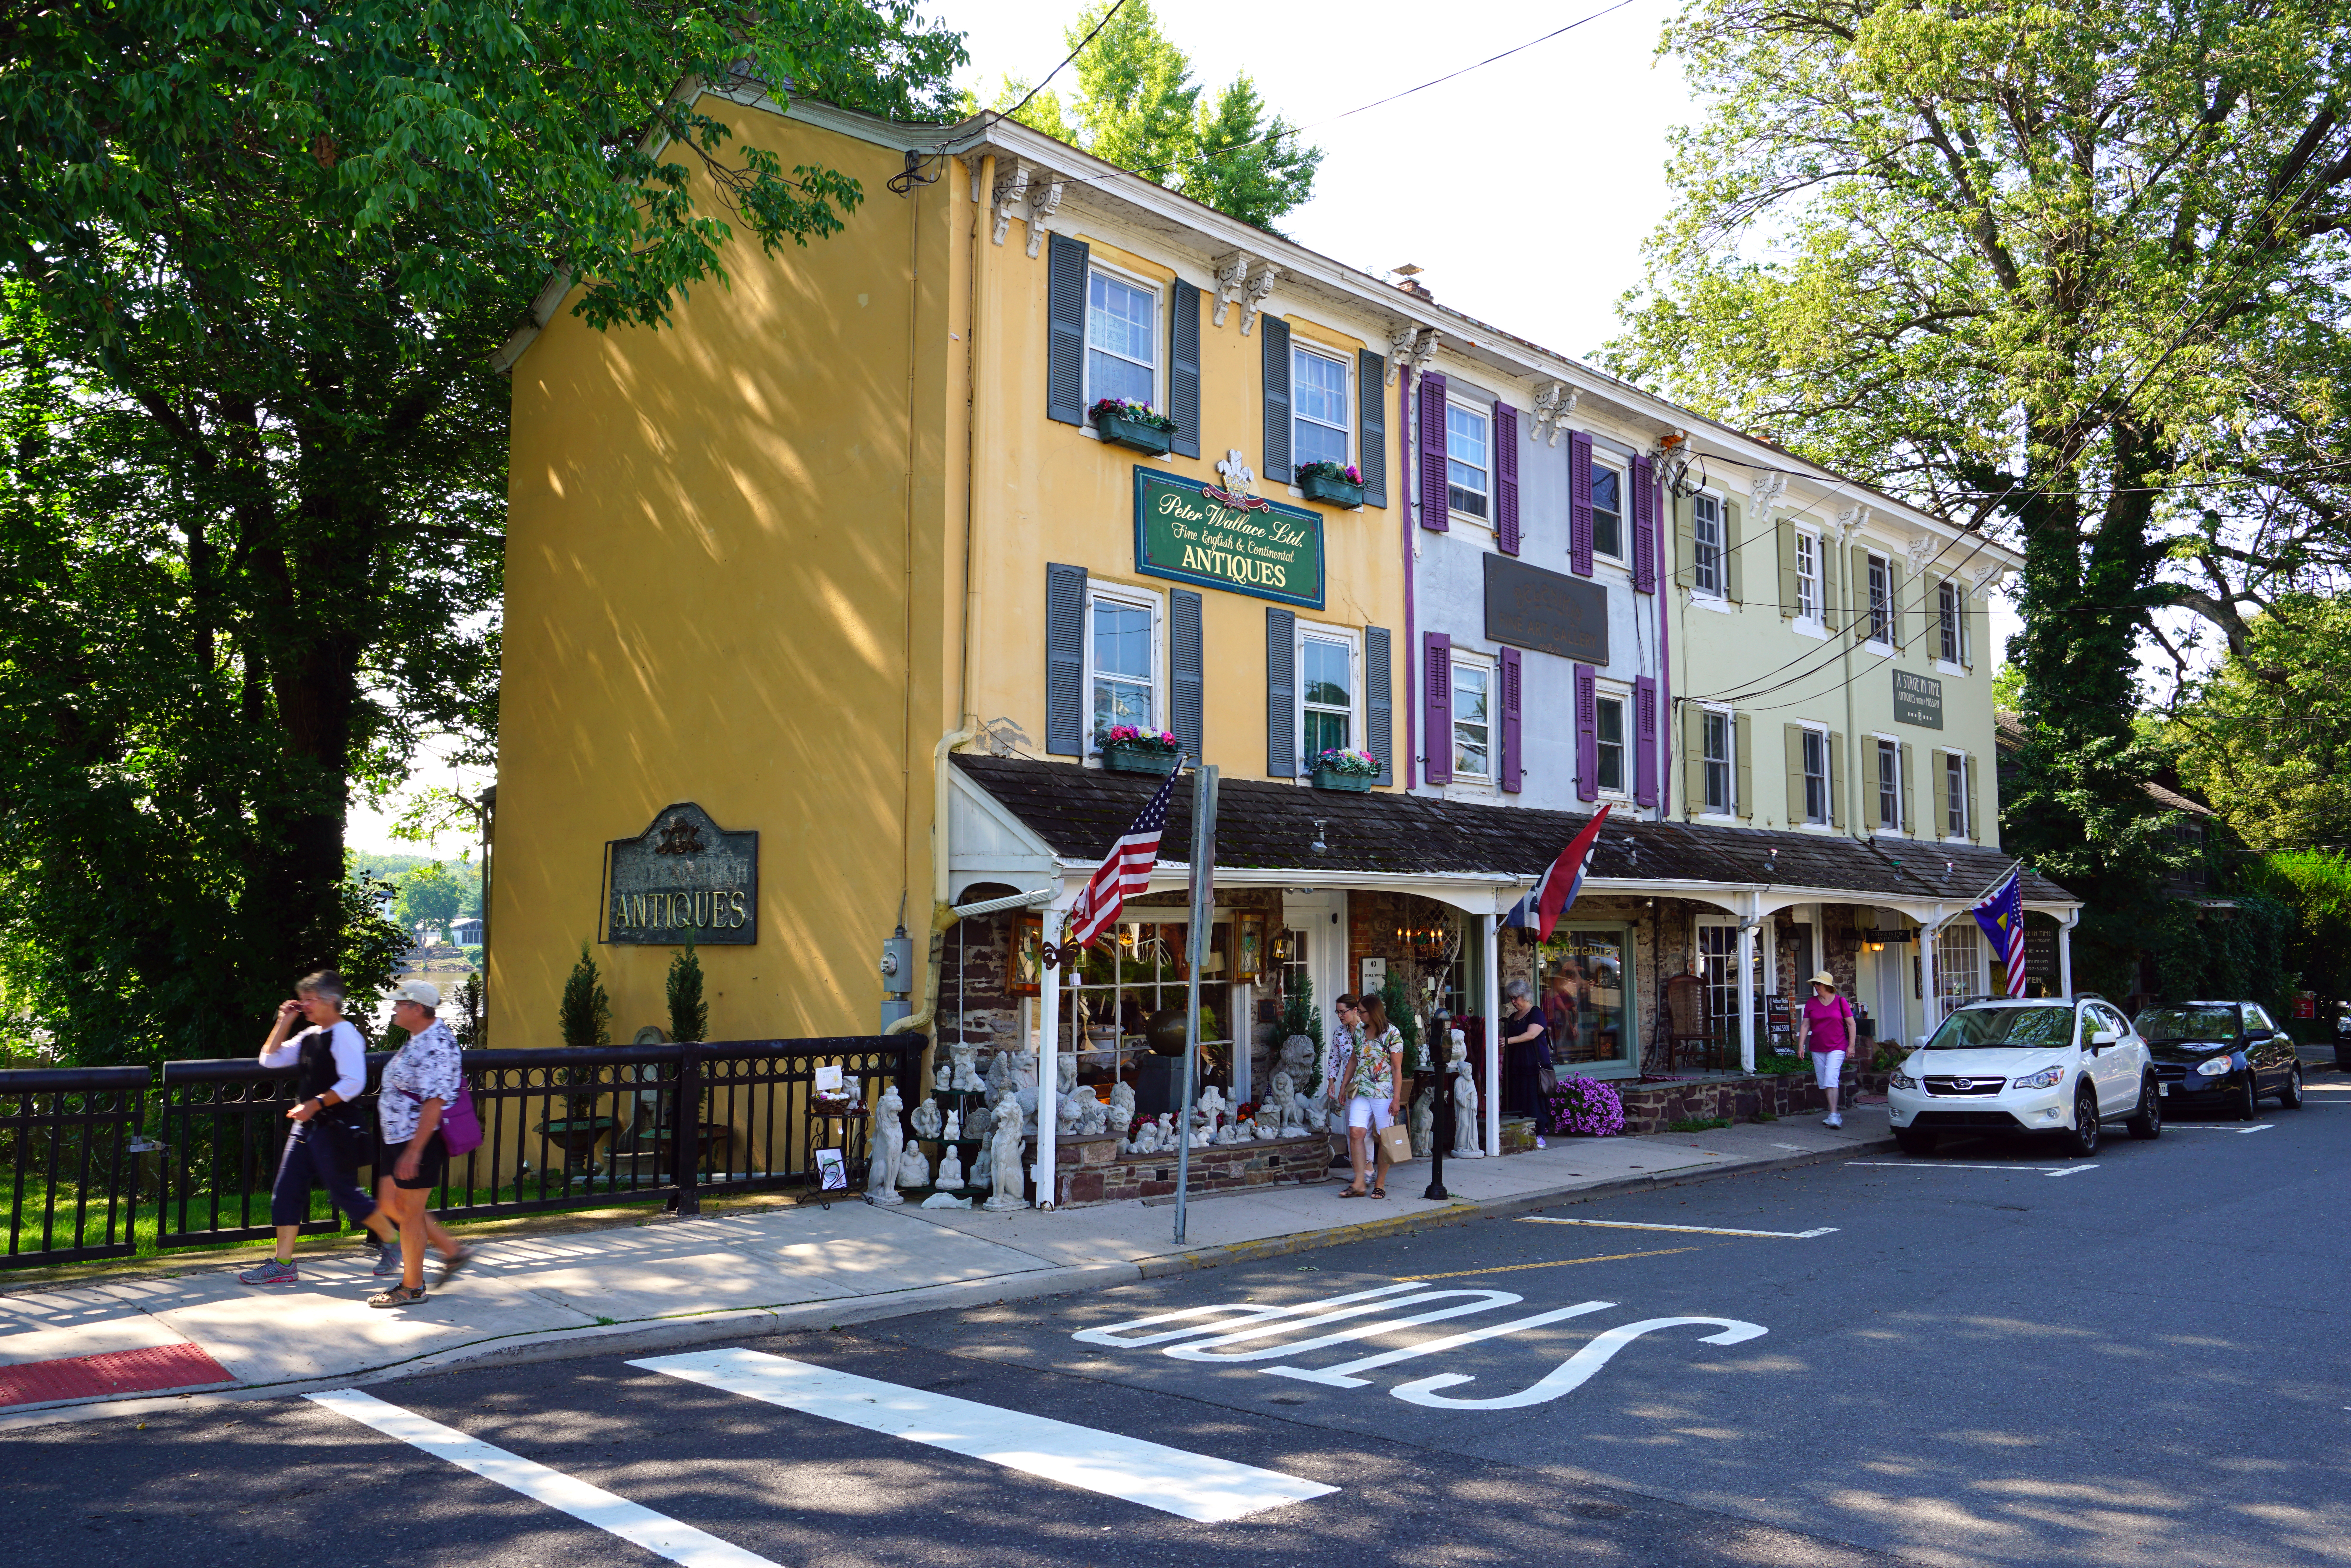 22 small towns near Philly you need to visit in 2019 - Curbed Philly